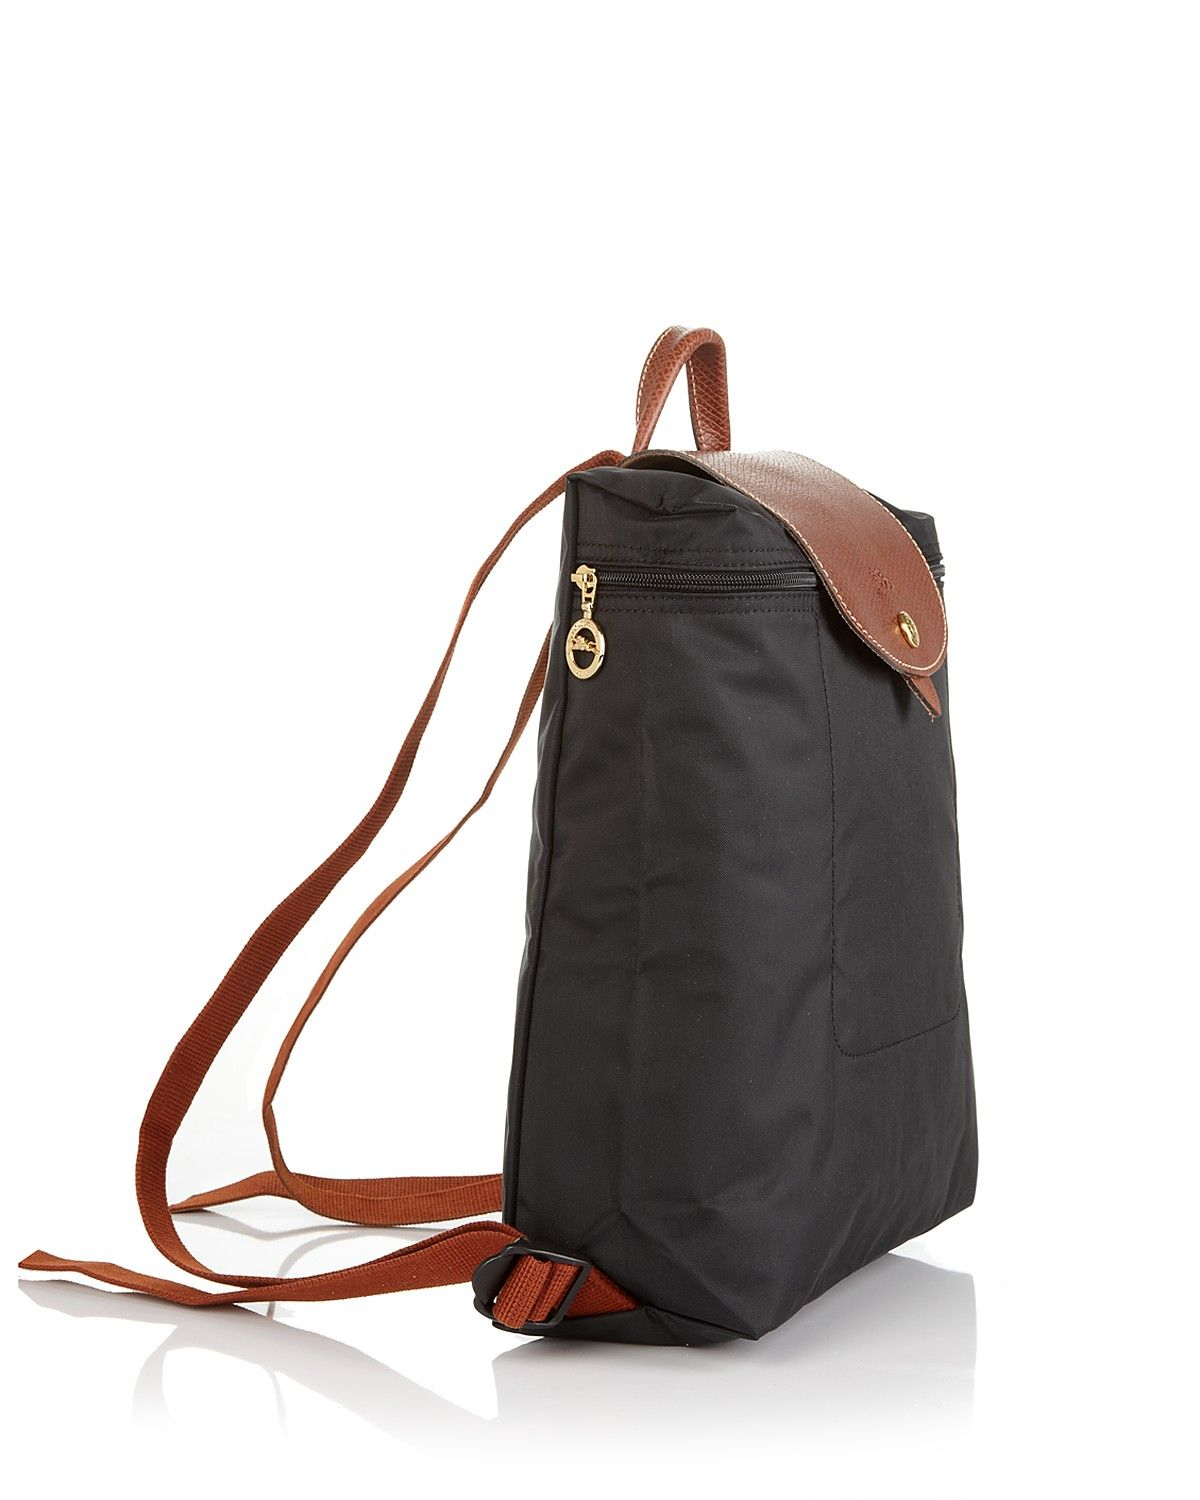 Longchamp Backpack - Le Pliage PRICE   125.00 32c80e9e9b6e0